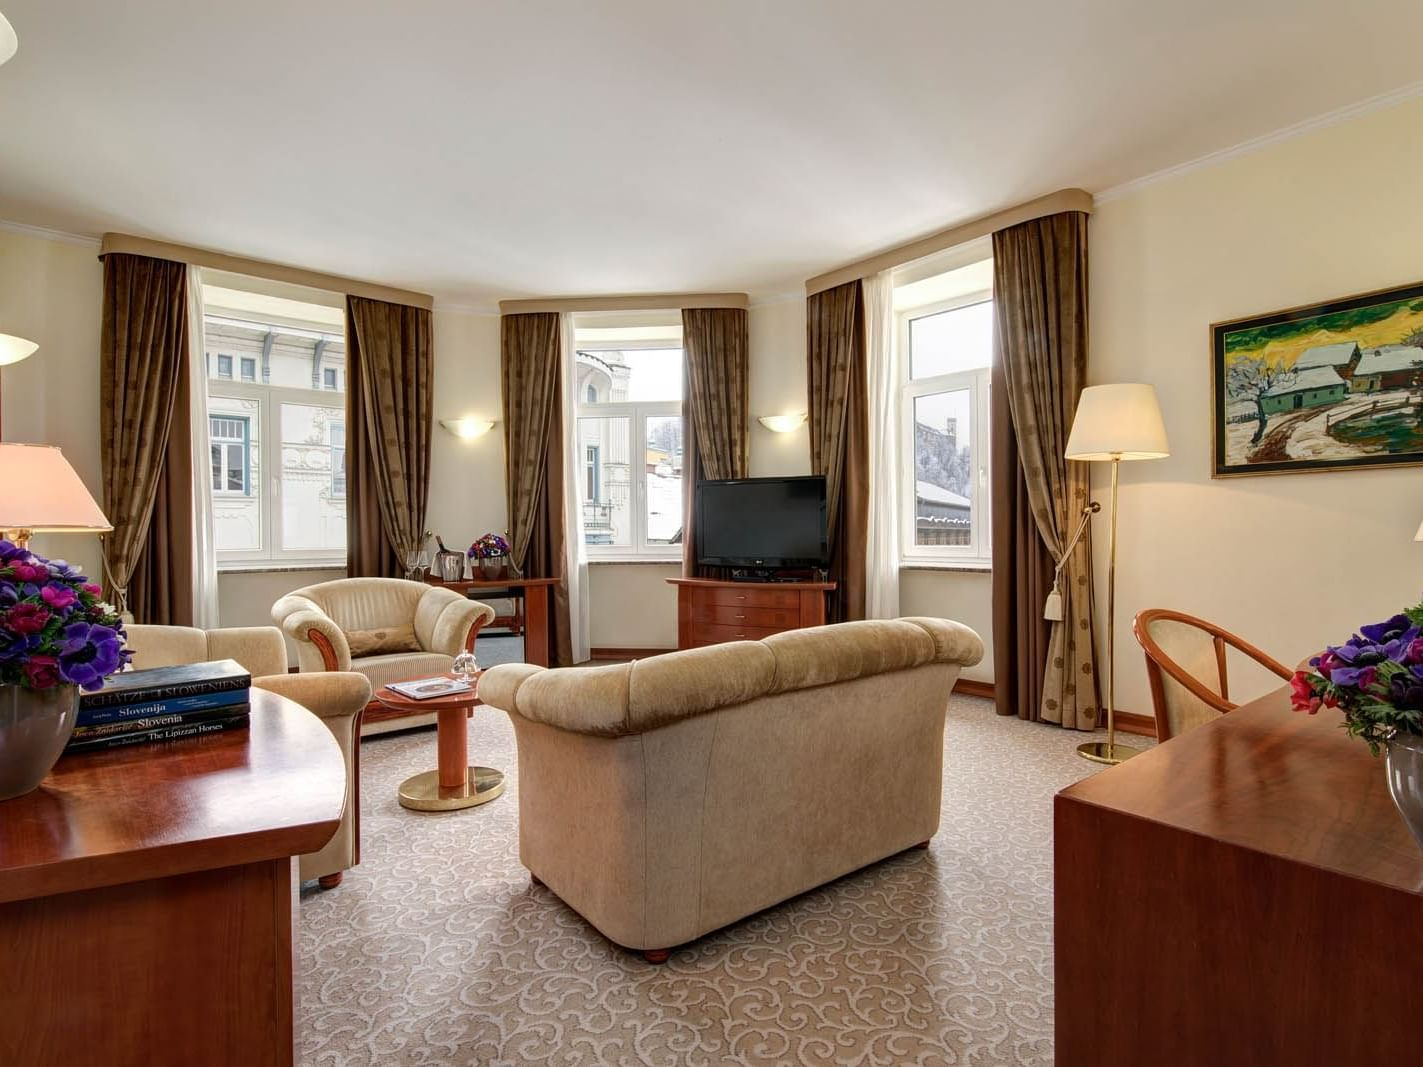 Presidential suite Grand hotel Union